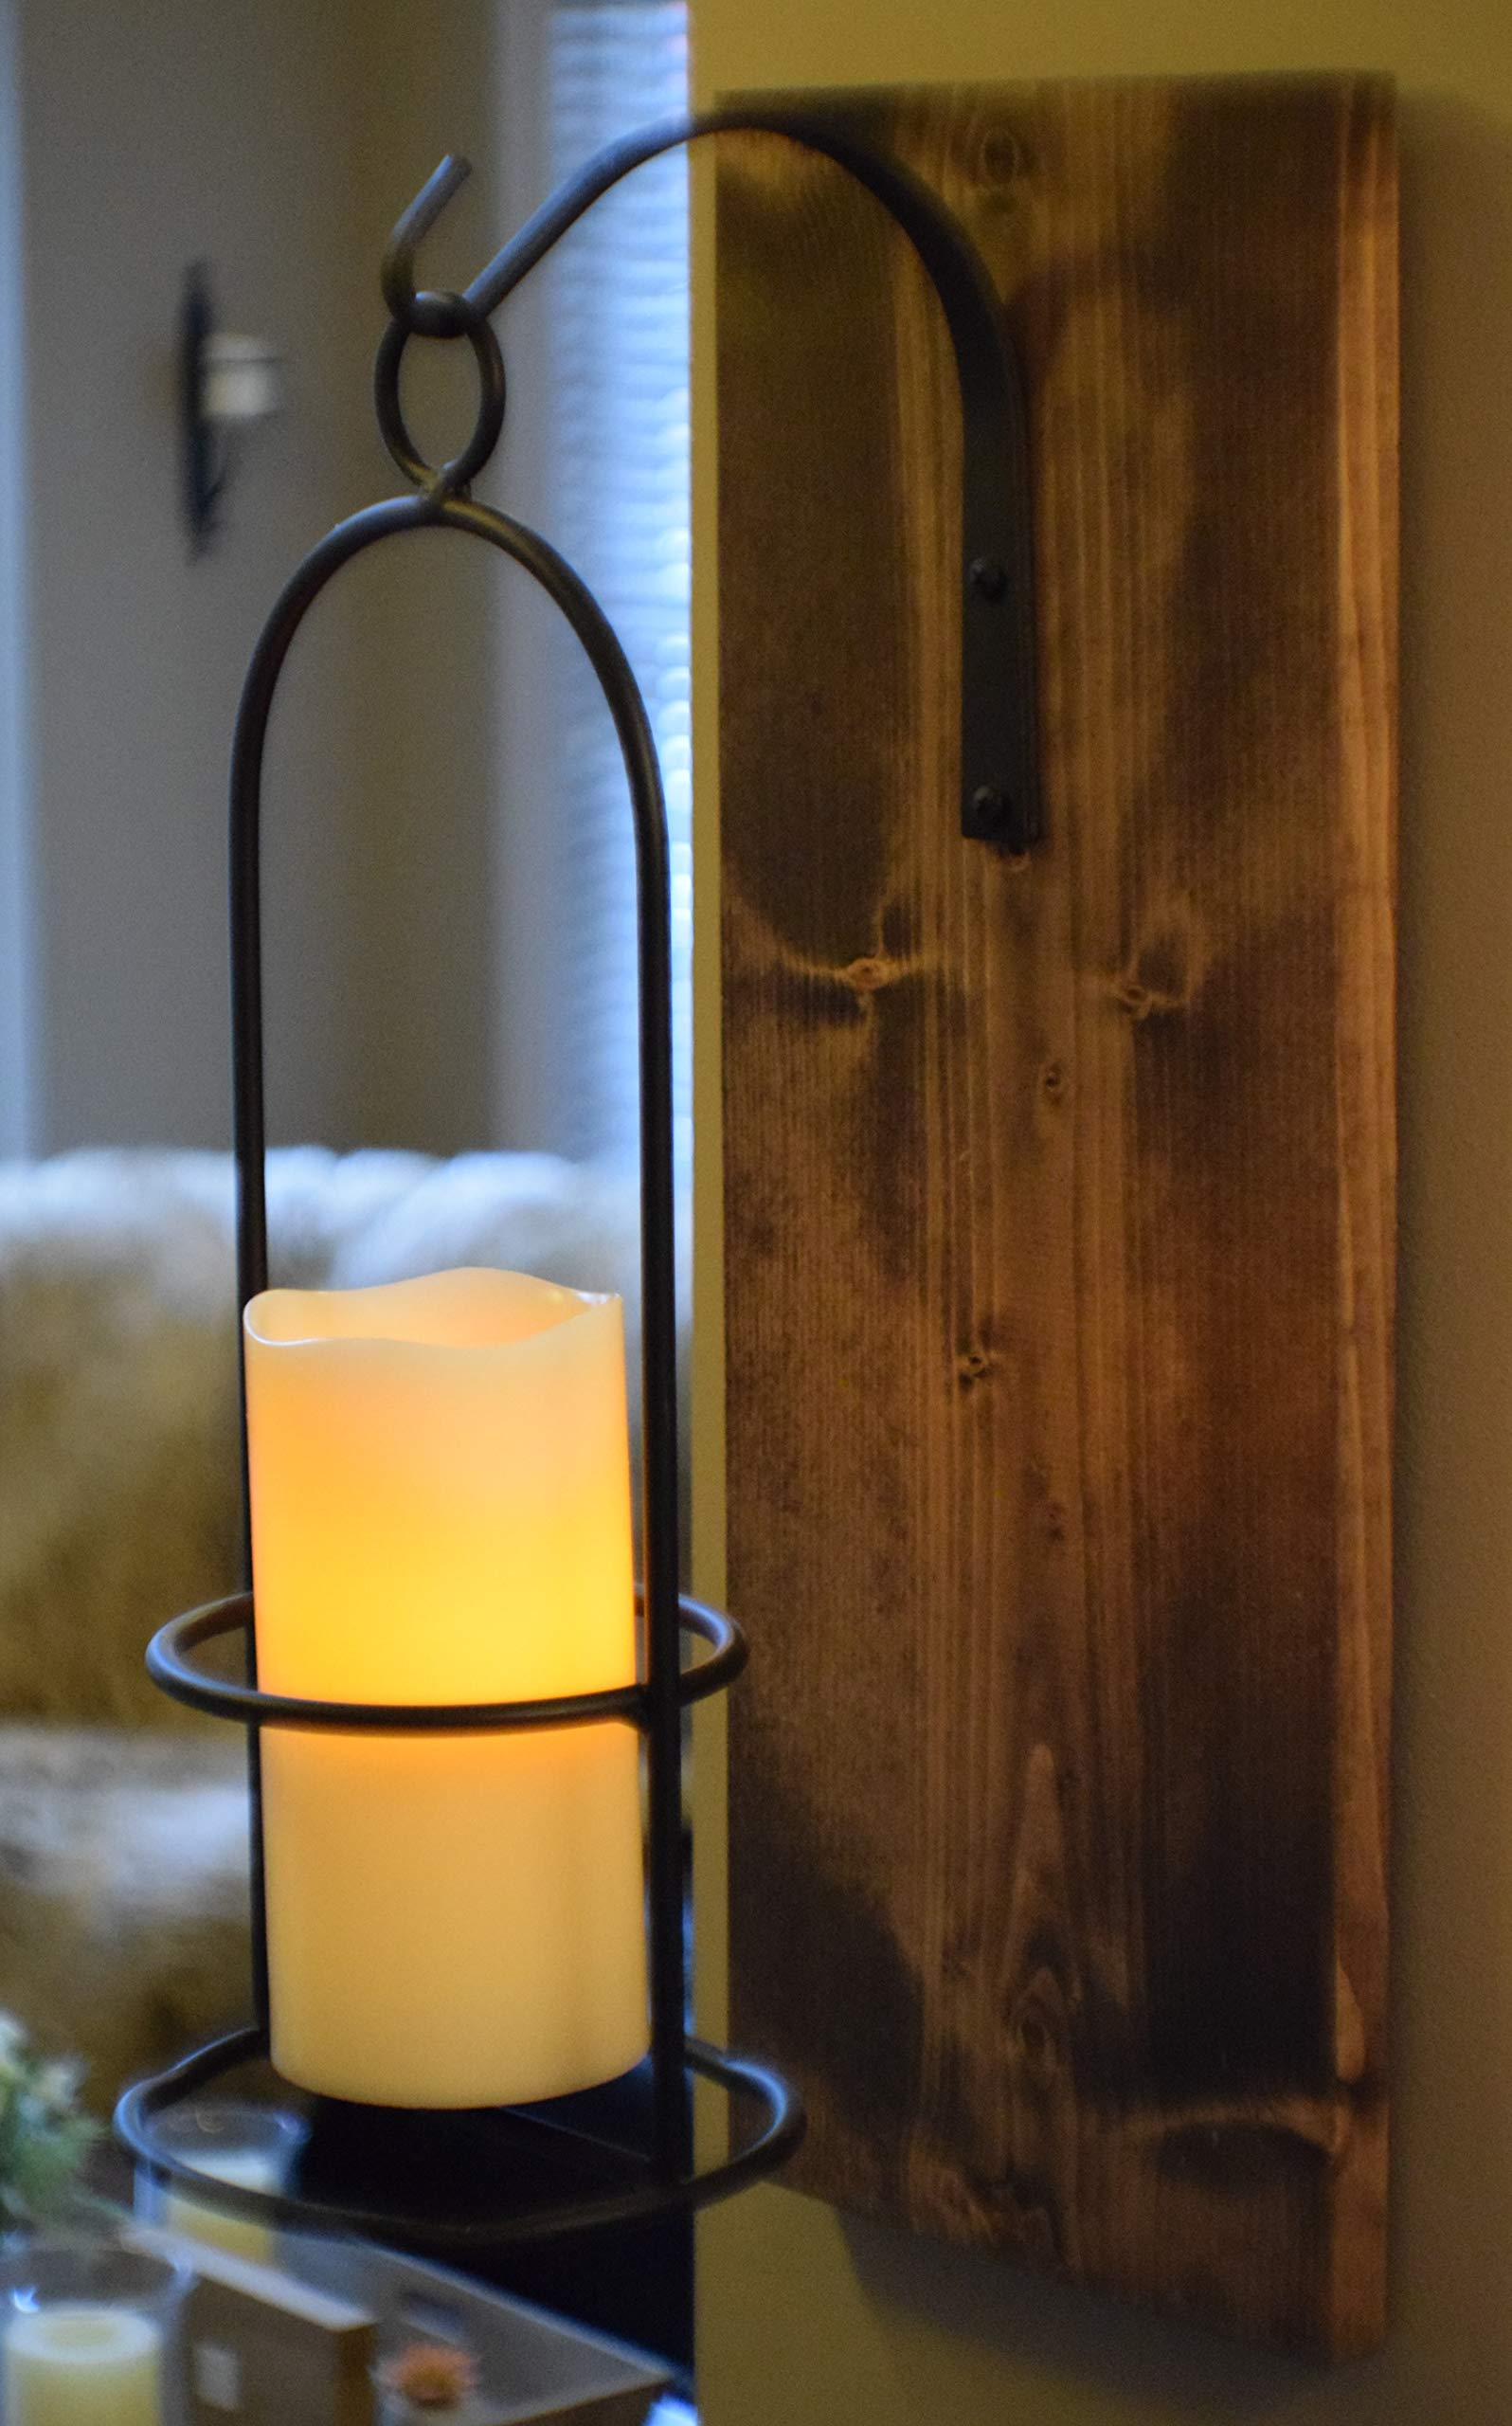 Rustic Large Wrought Iron Hanging Candle Sconce, 6 inch LED Candle with Flickering Light and 6 Hour Timer, Handmade in The USA, Farmhouse Decor